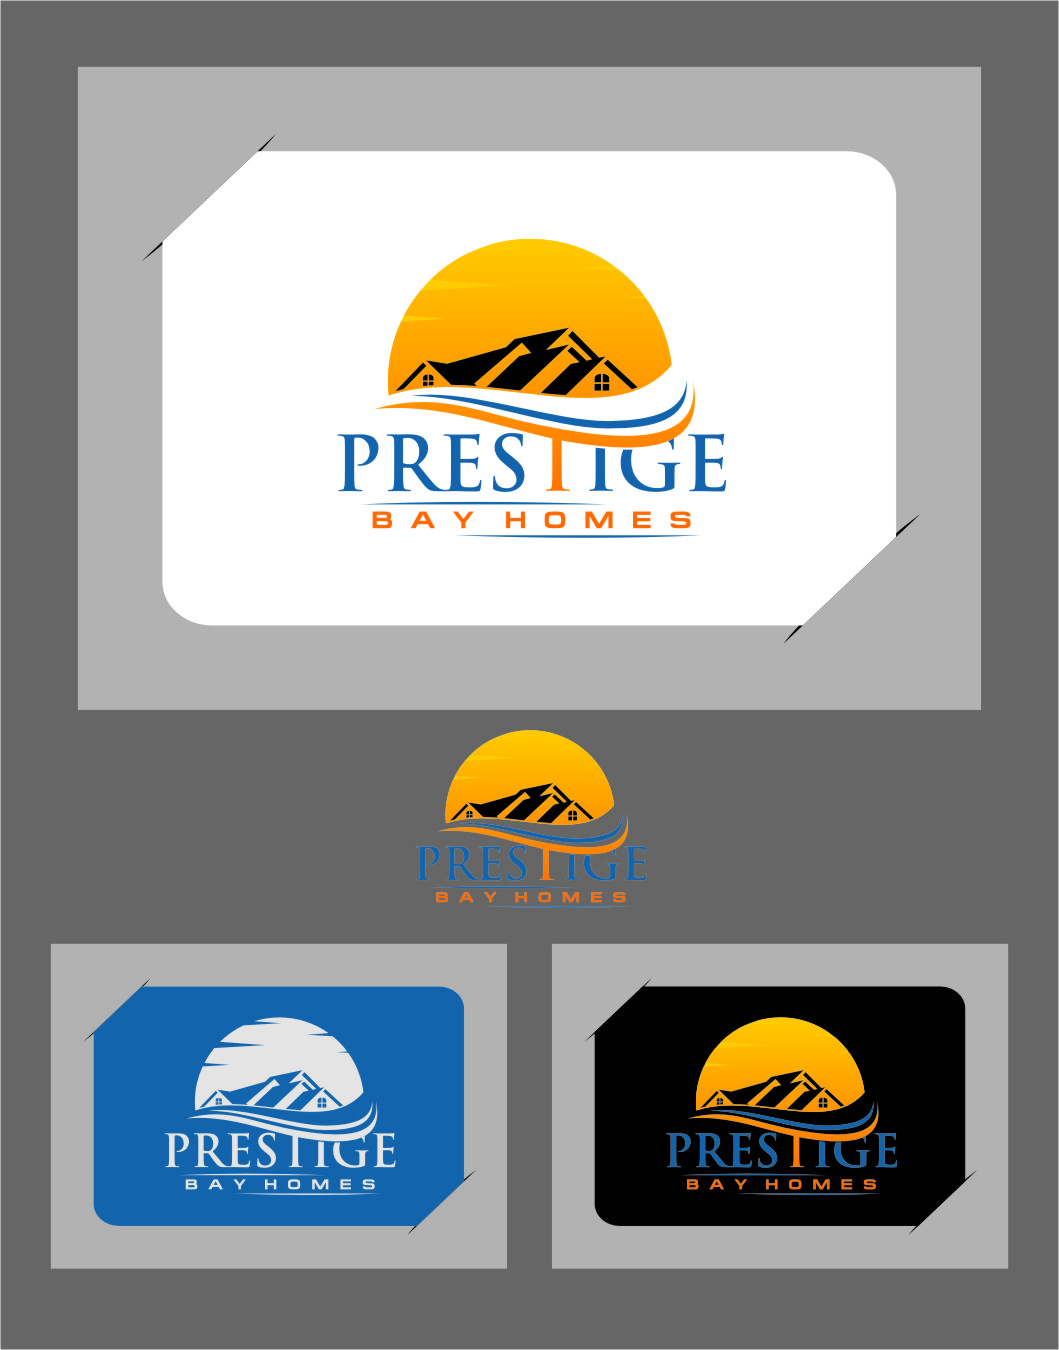 Logo Design by Ngepet_art - Entry No. 94 in the Logo Design Contest Imaginative Logo Design for Prestige Bay Homes.